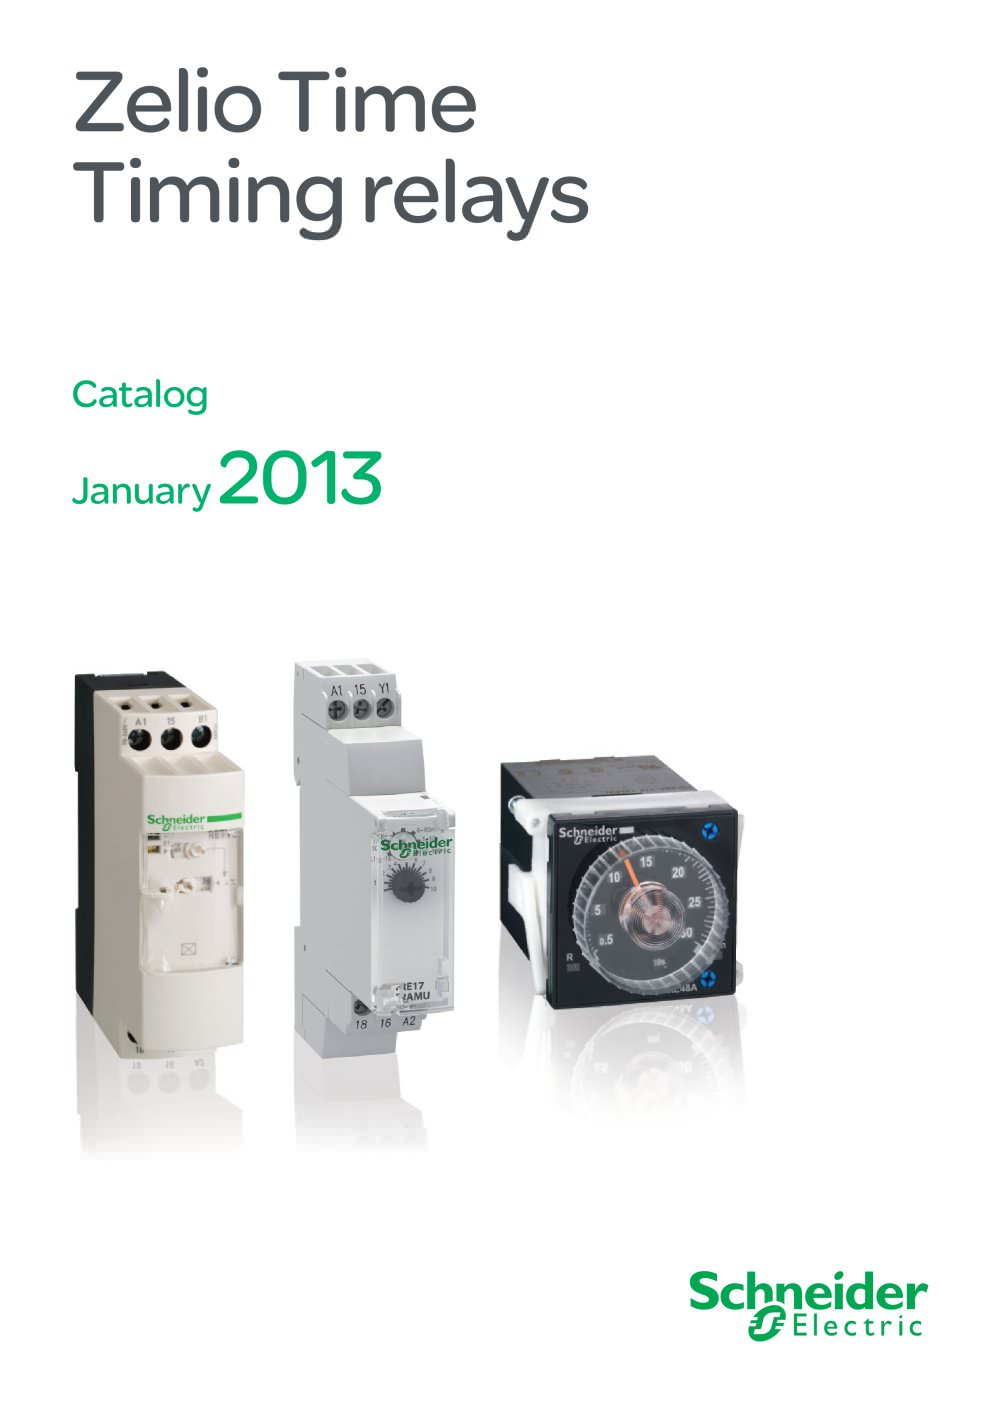 zelio time timing relays catalog schneider electric pdf catalogs rh pdf archiexpo com